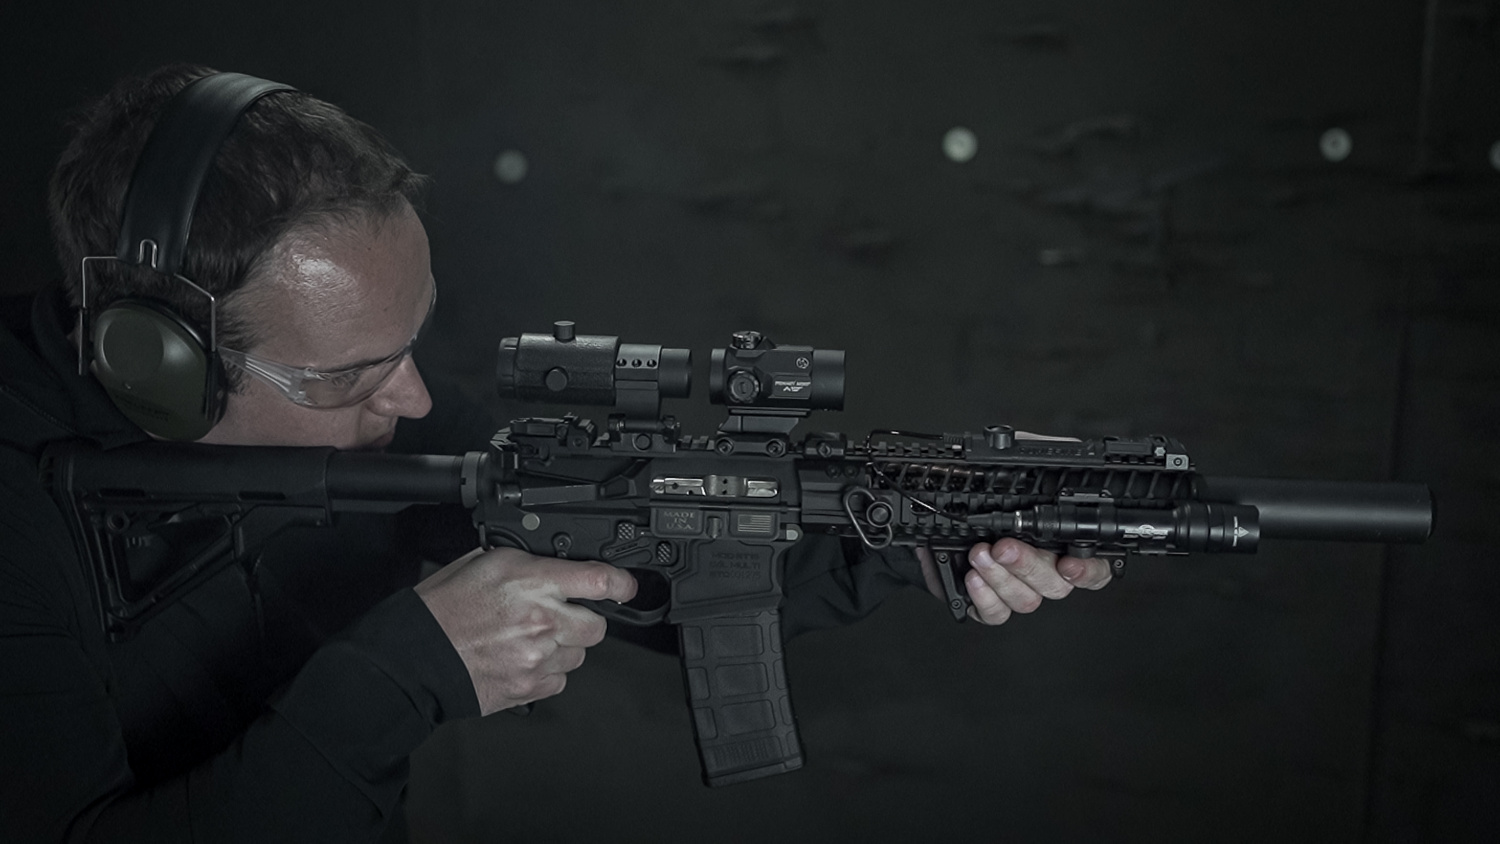 SILENCER SATURDAY #159: The Spike's Tactical Compressor - Credit: Ryan Ogborn